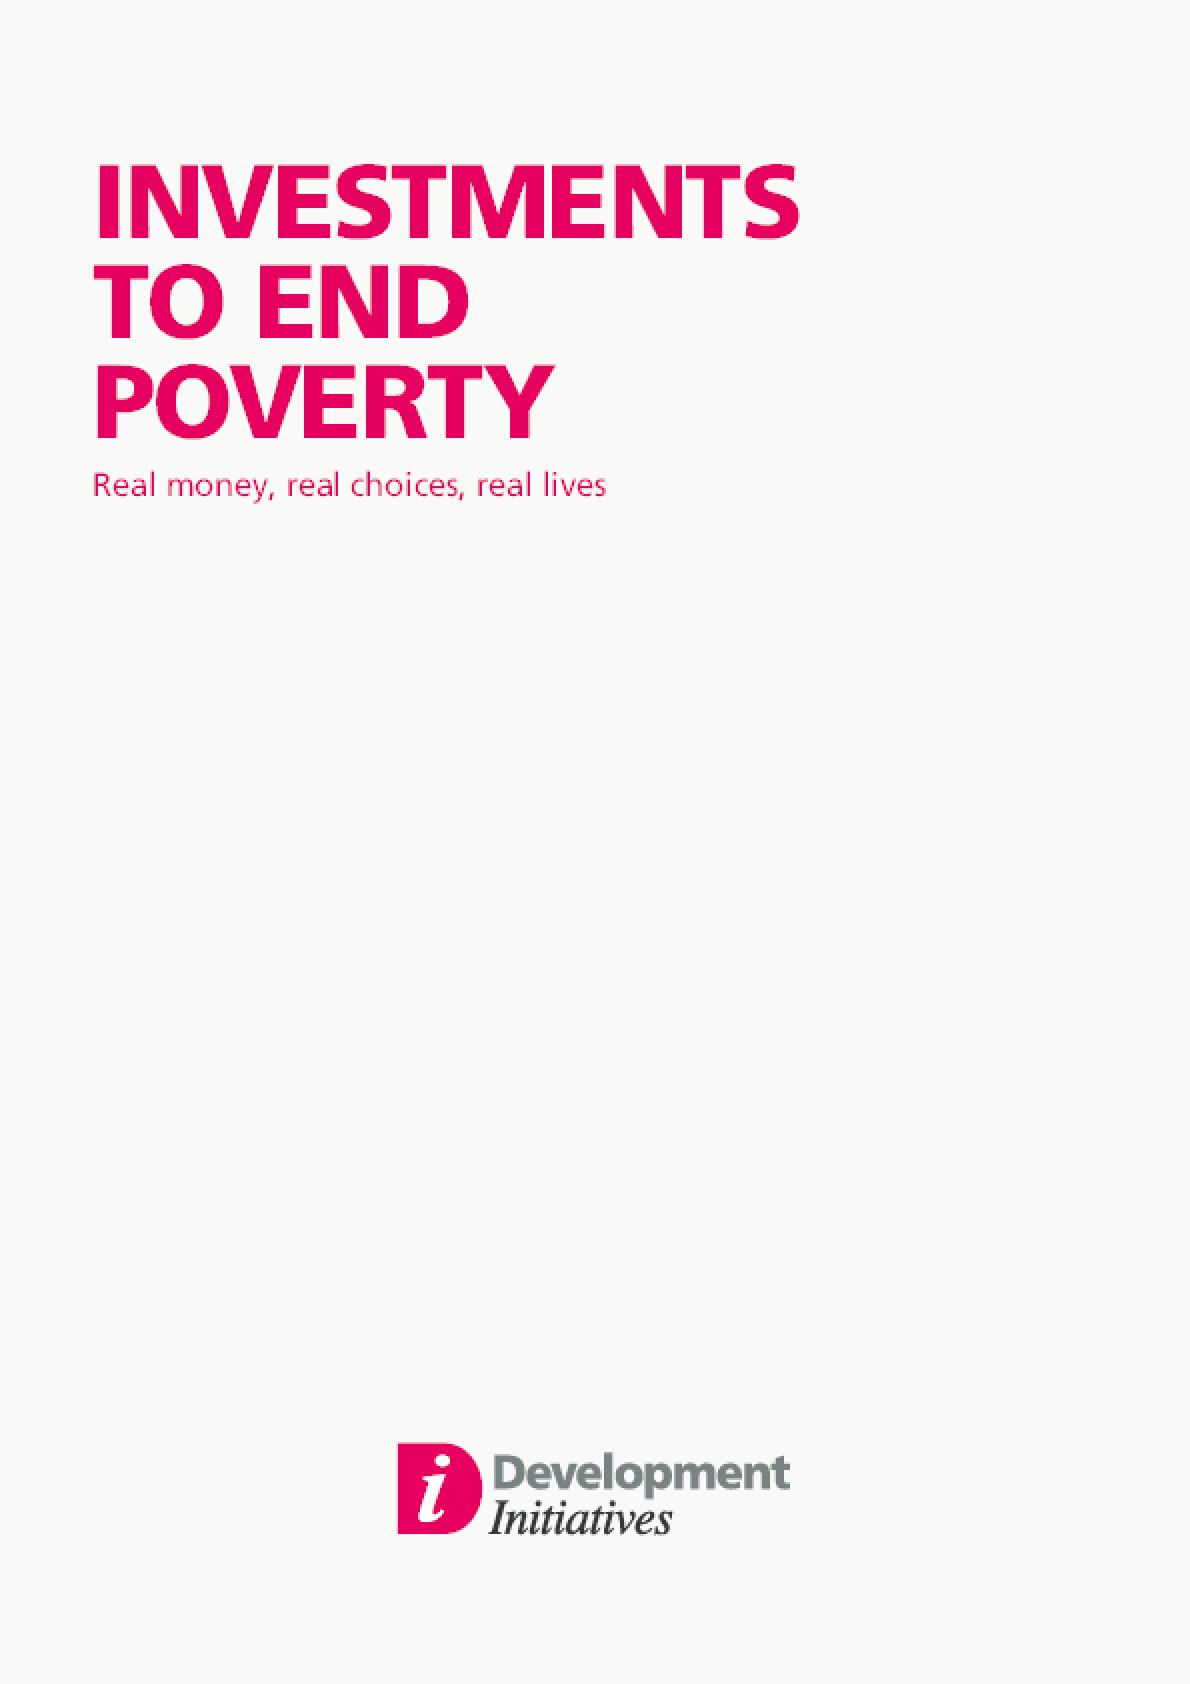 Investments to End Poverty